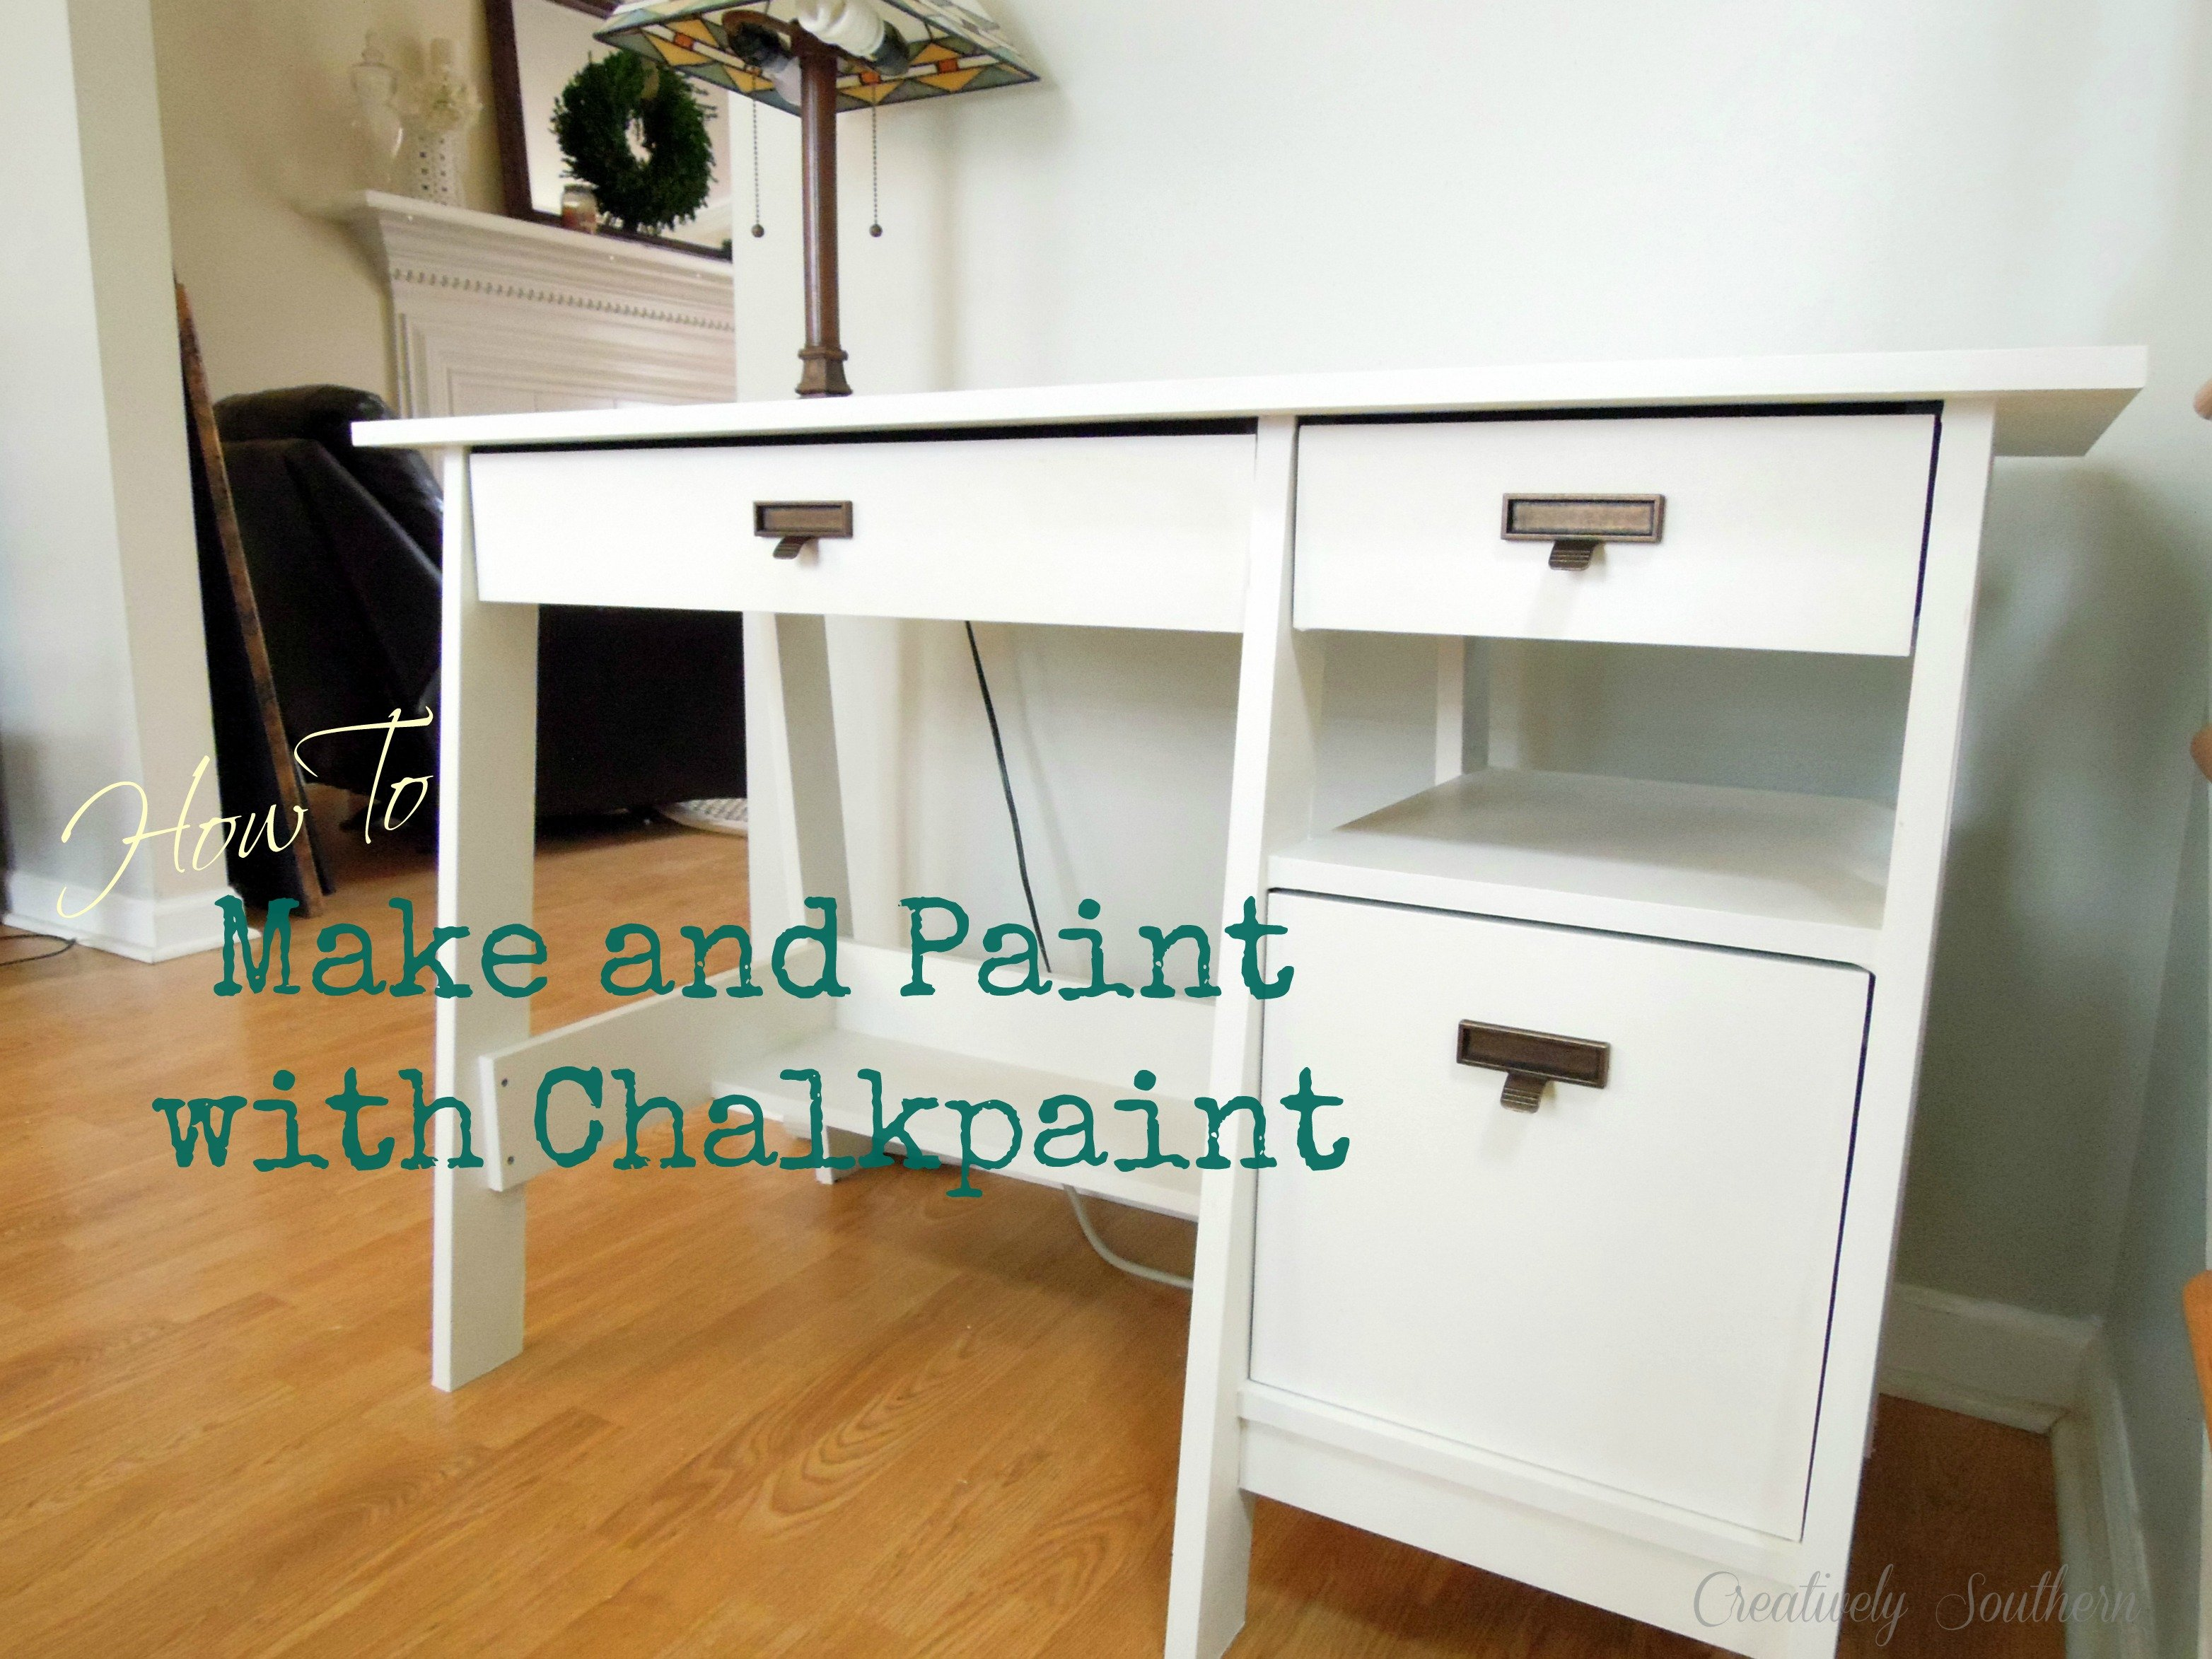 How to Make Chalked Paint